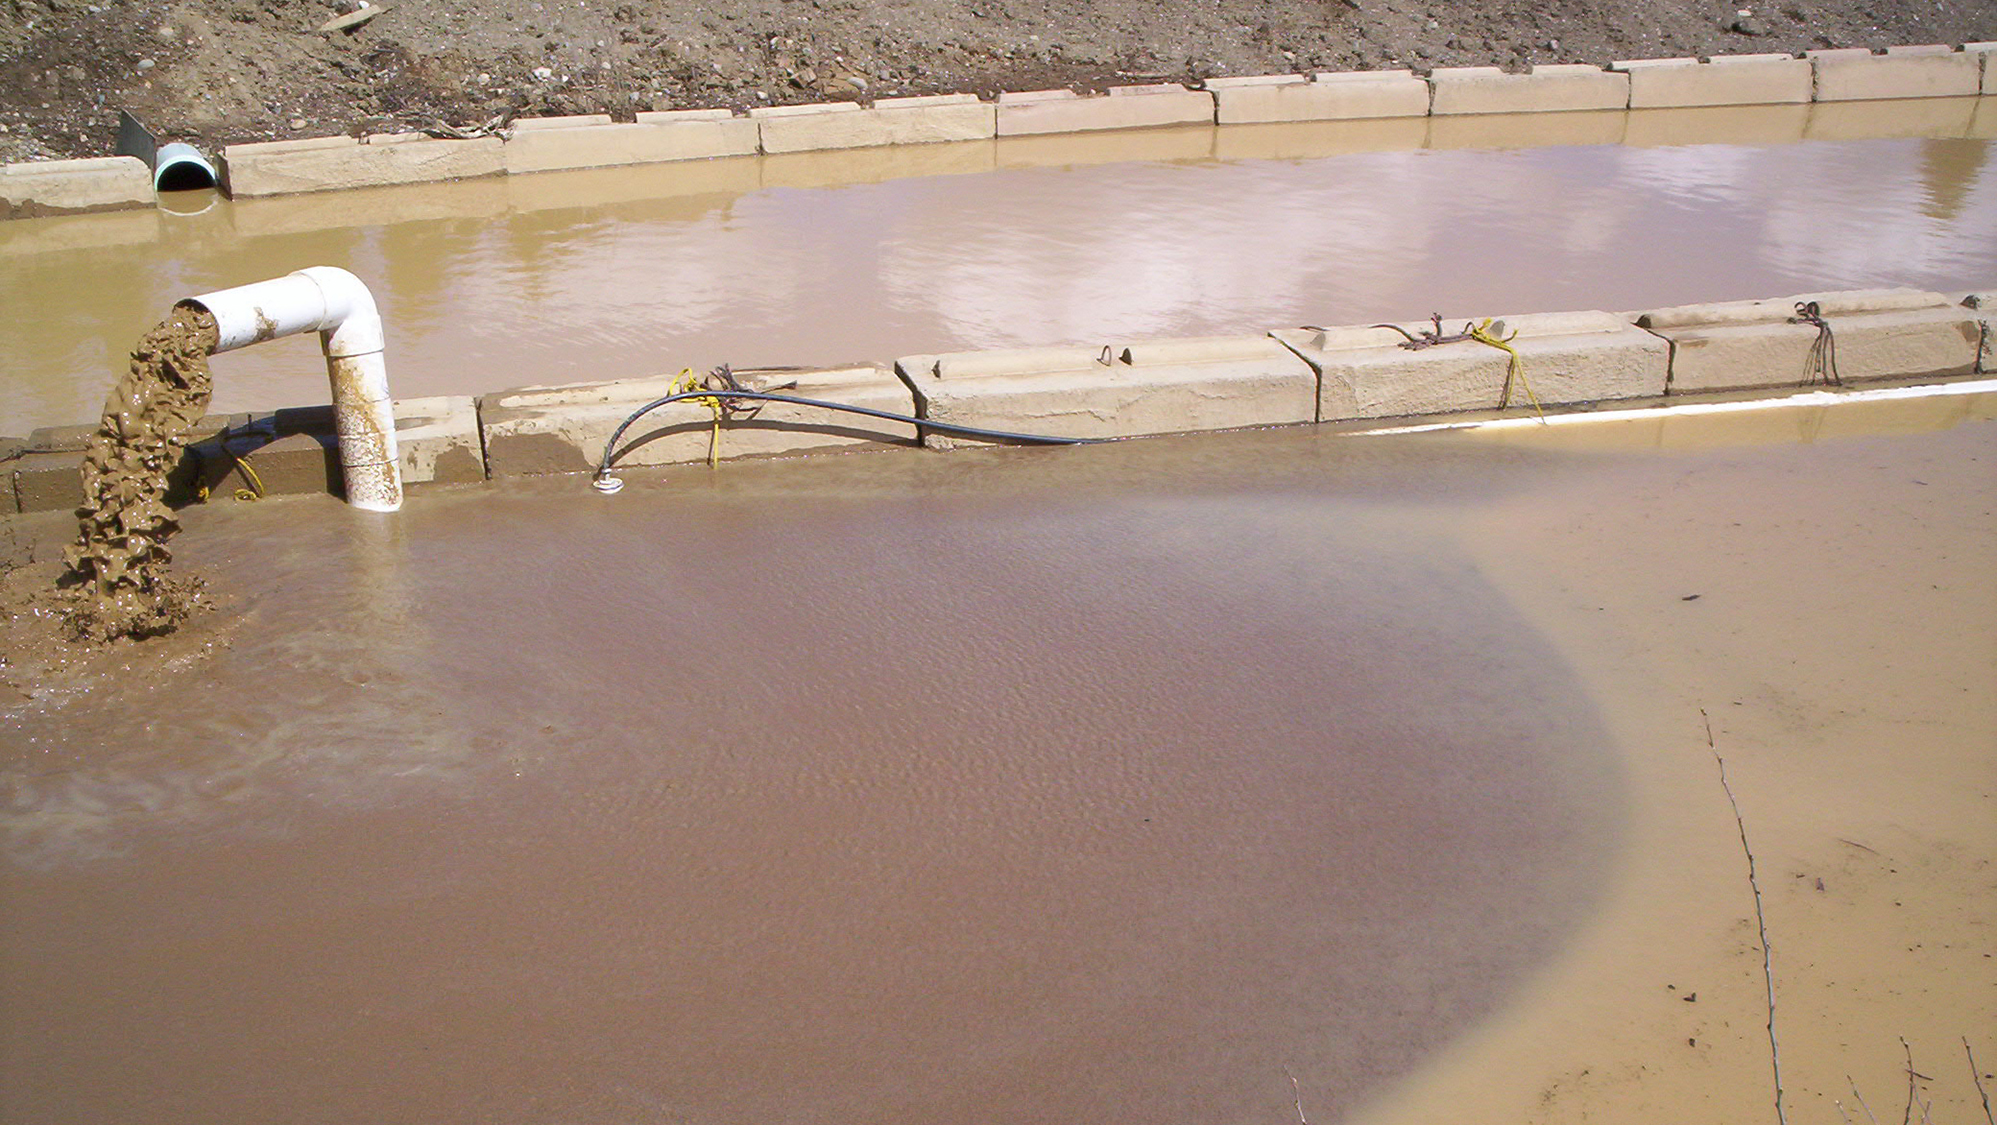 Dirty water pumping out of a pipe into a dirty water cell with another dirty water cell filled behind it.